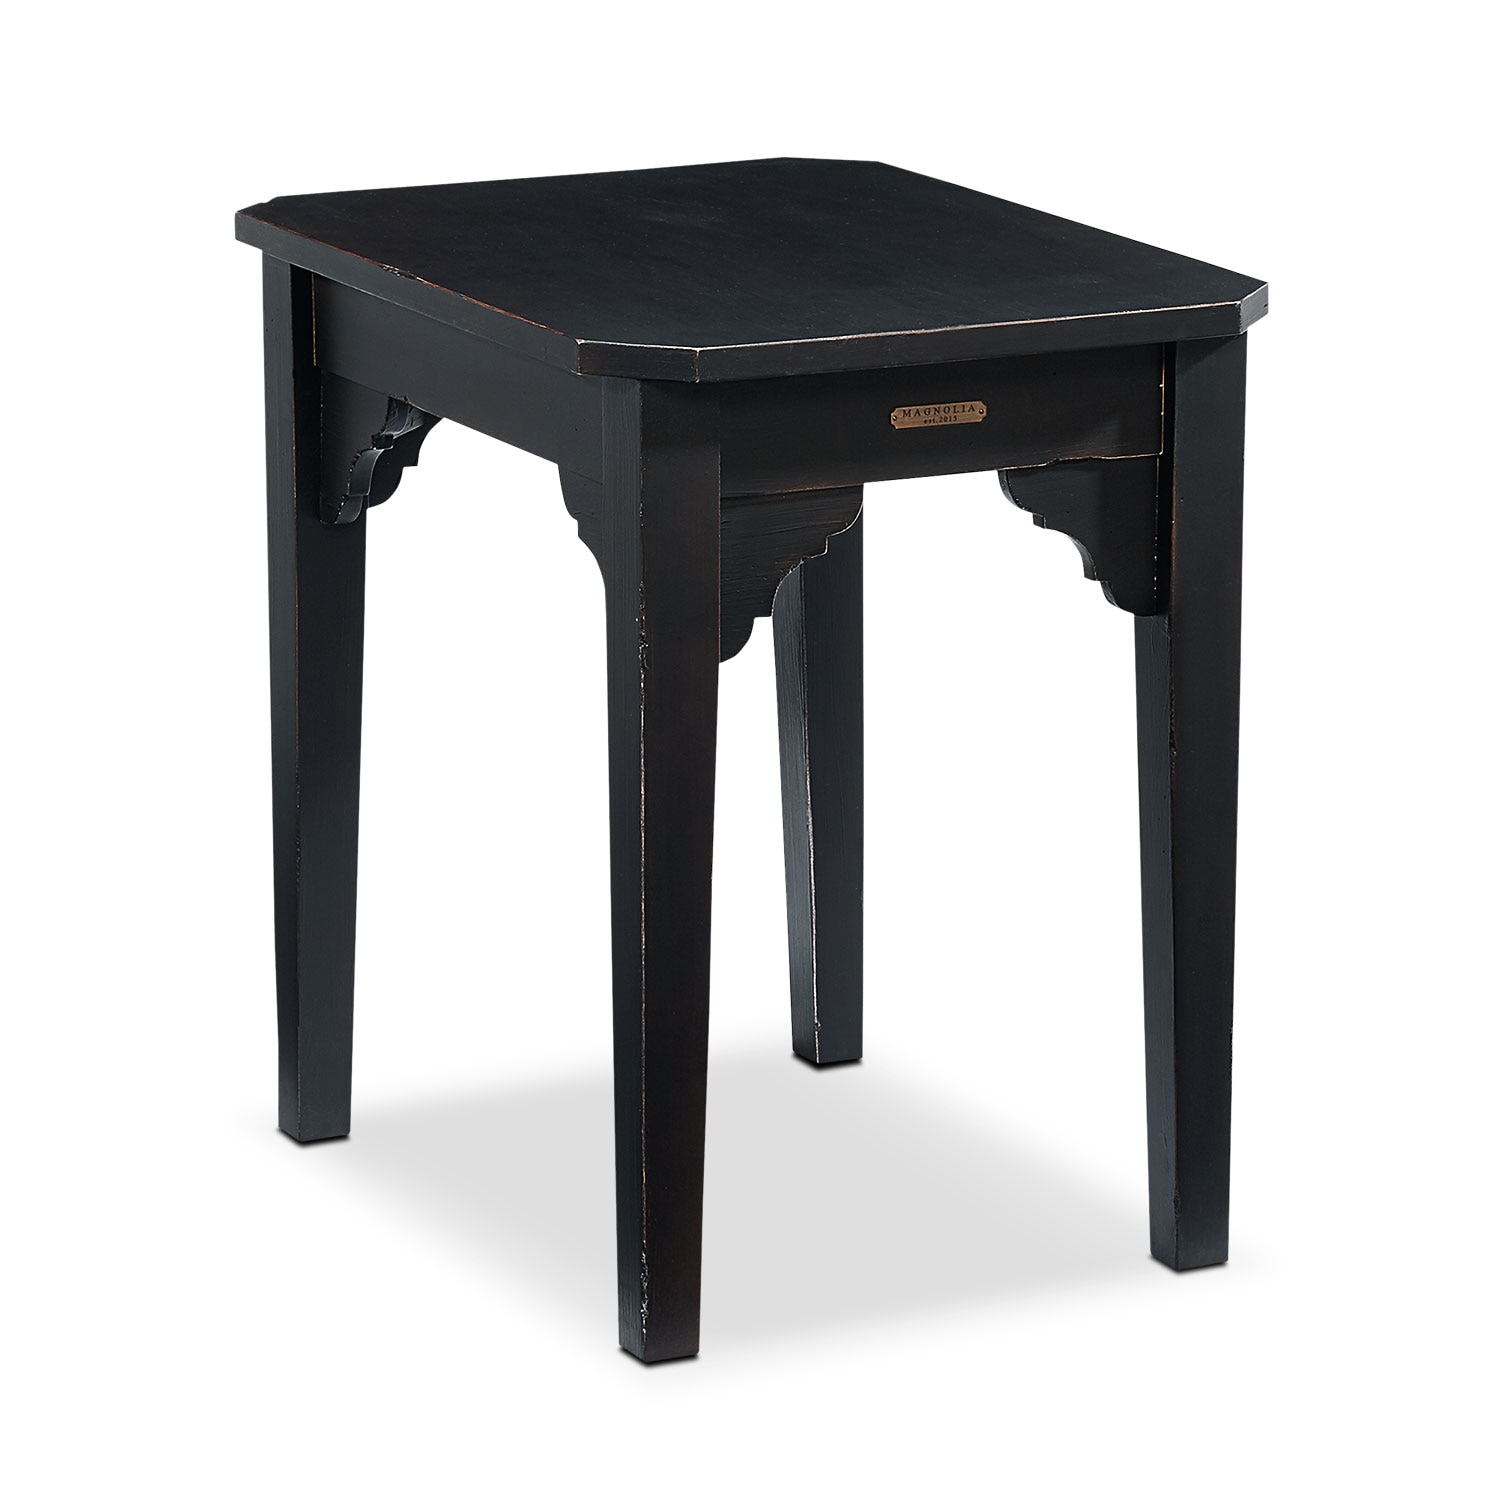 Farmhouse Bracket End Table - Black